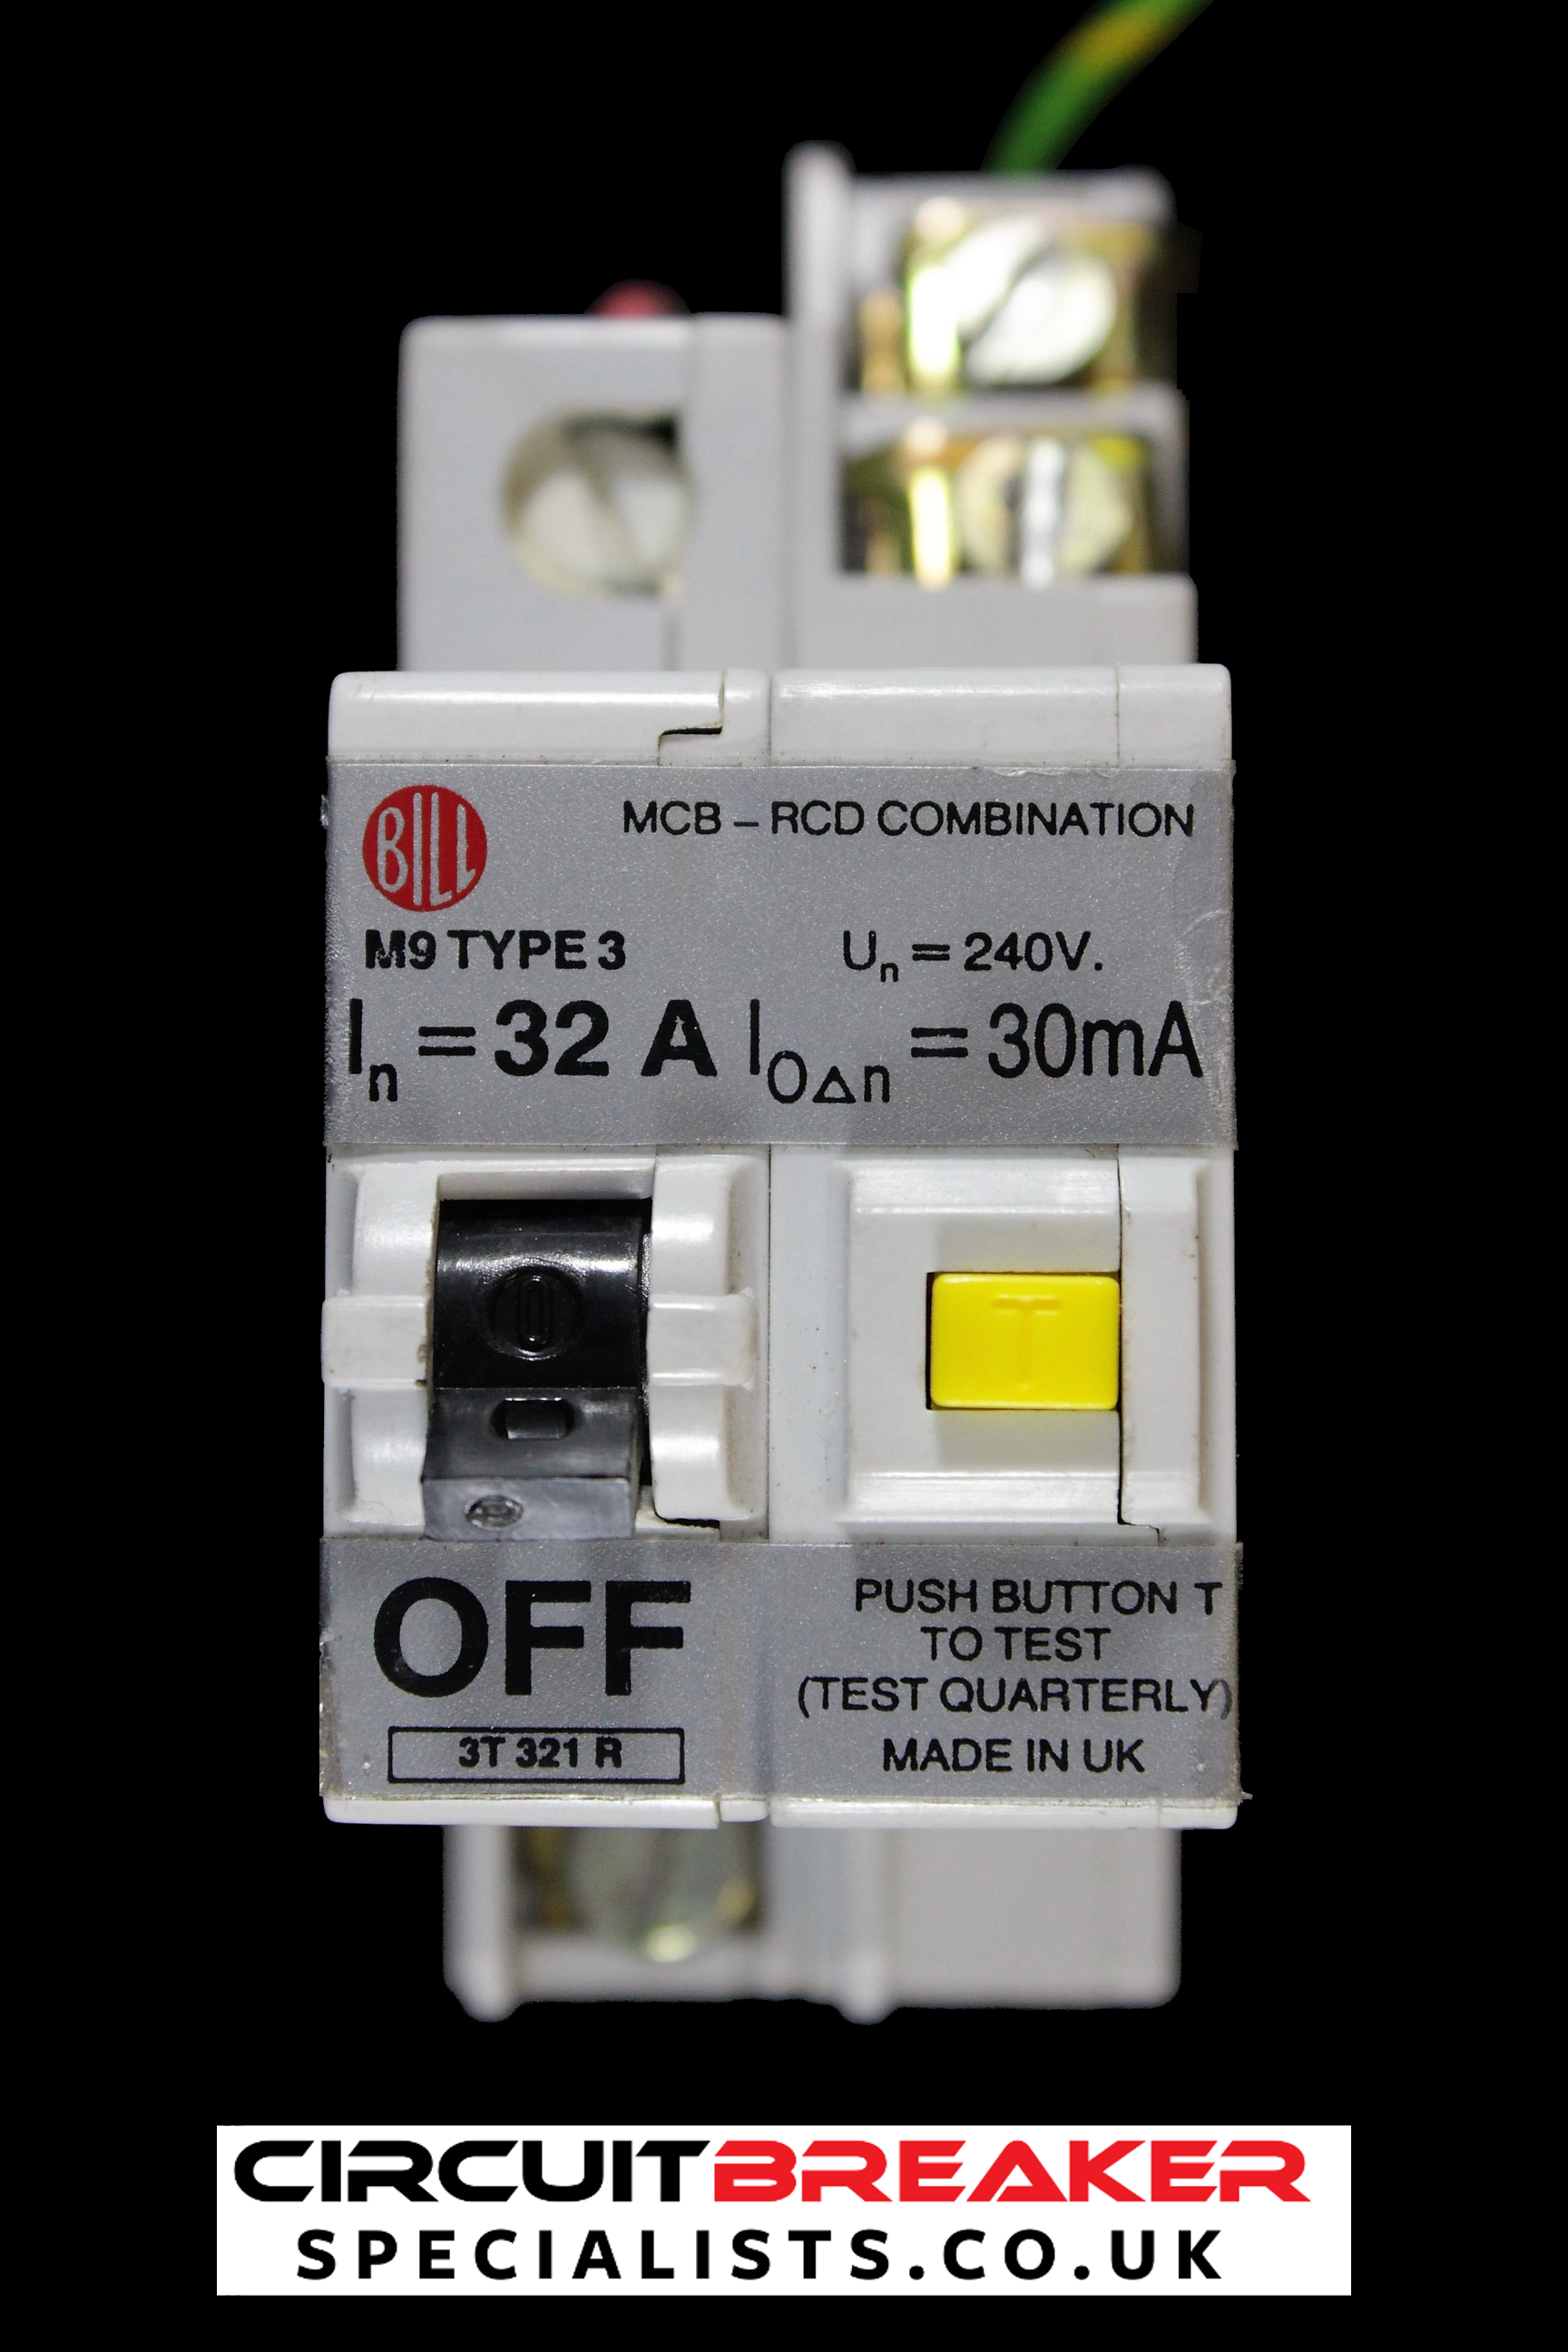 BILL 32 AMP TYPE 3 M9 30 mA DOUBLE POLE RCBO MCB RCD 3T321R